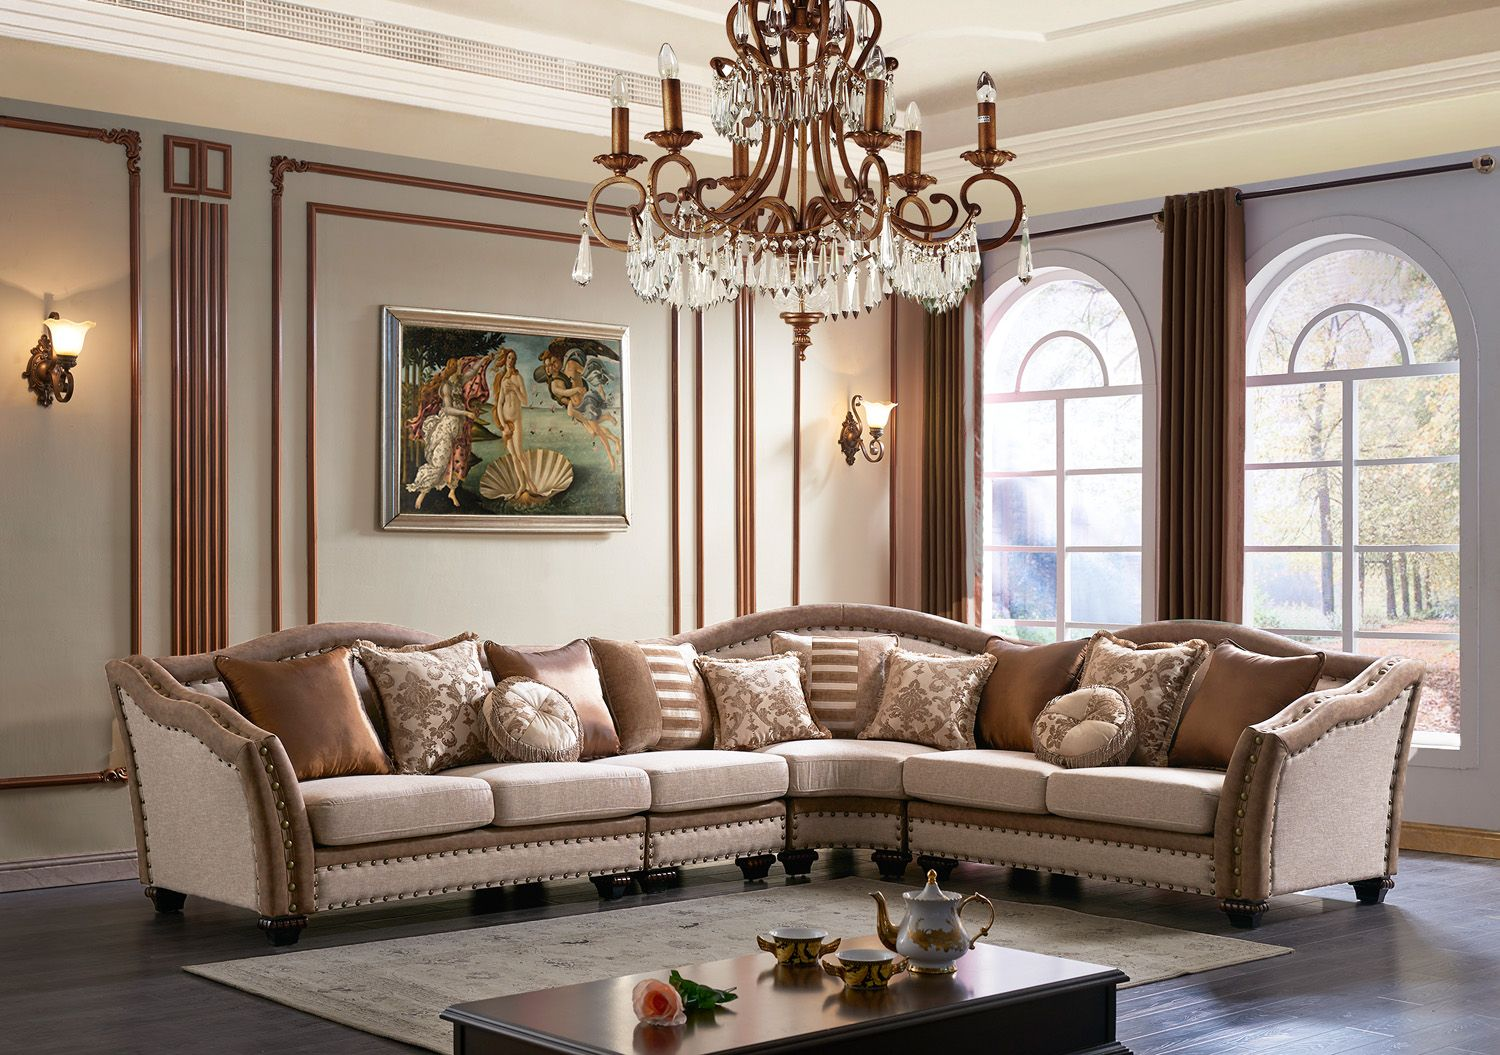 Chateau Formal Traditional Living Room Furniture Sectional Sofa Neutral Fabric